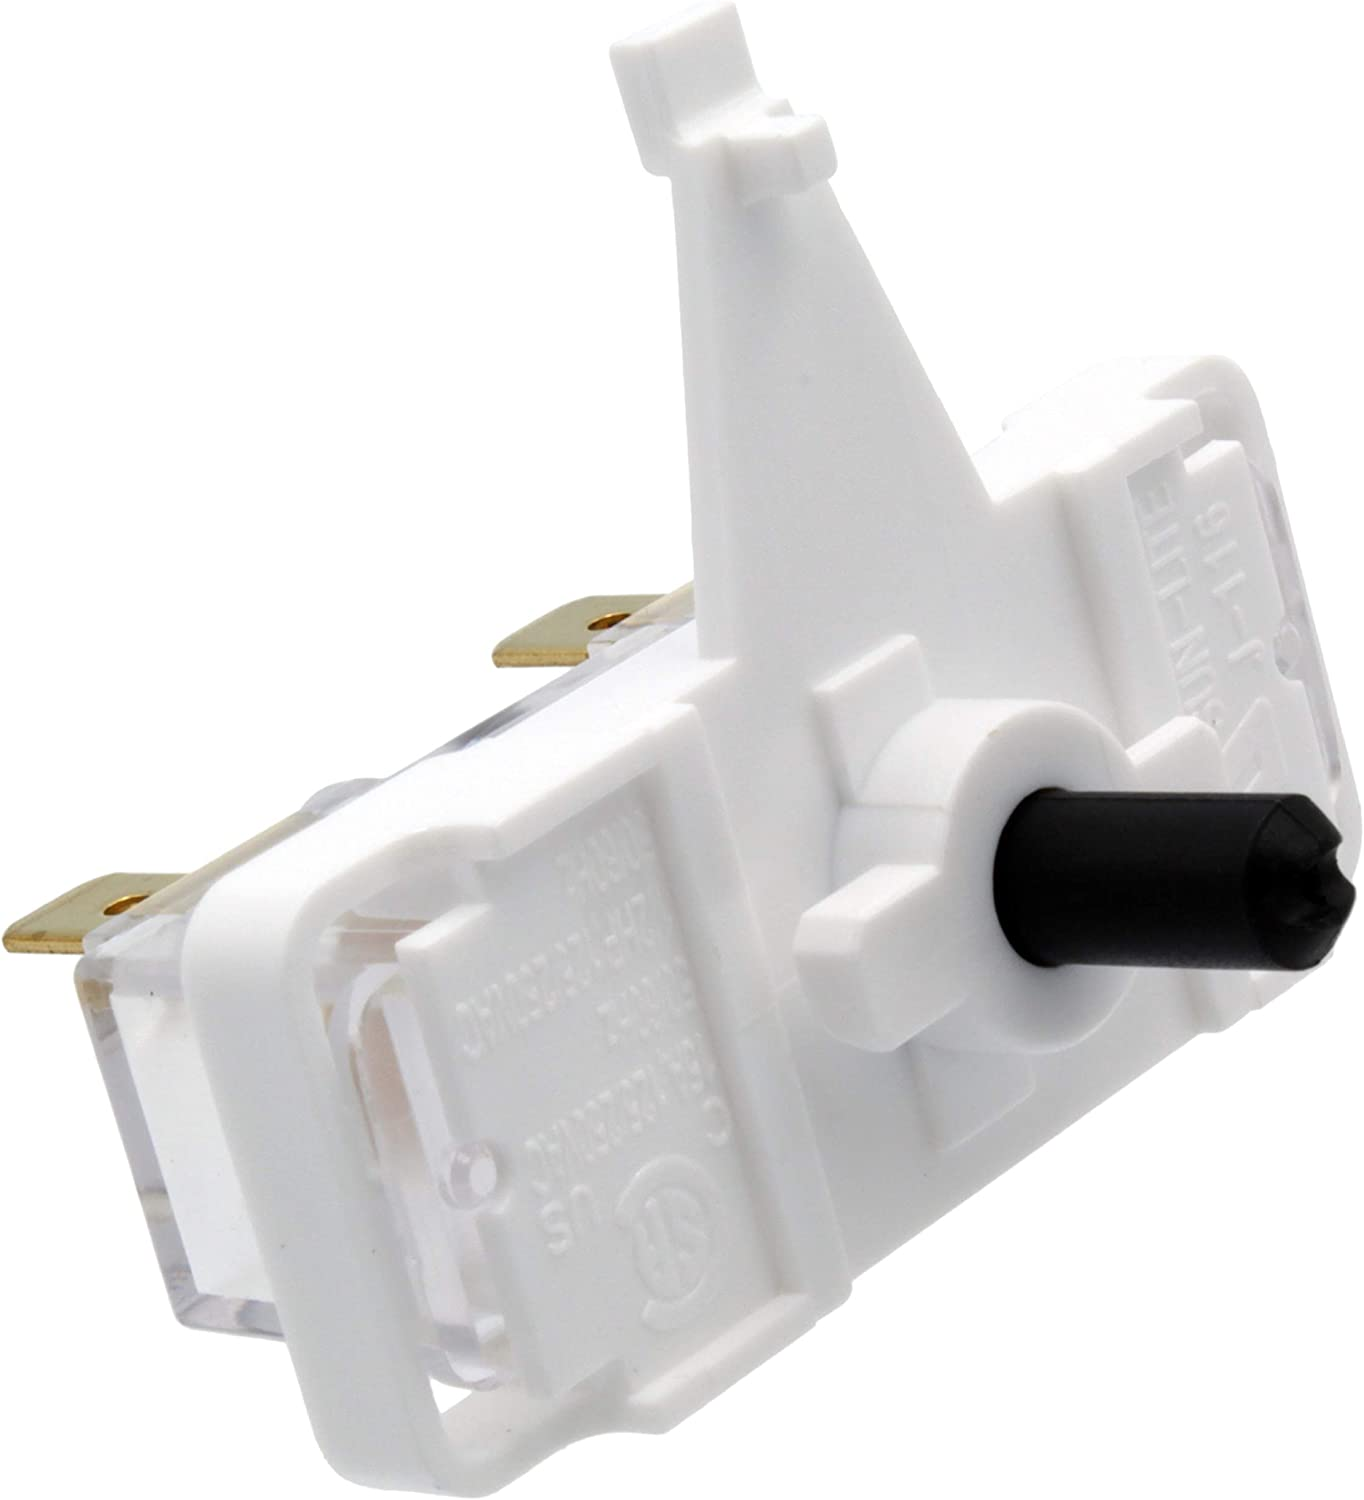 Supplying Demand WE4M416 Dryer Push to Start Switch Compatible With GE Fits WE4M367, 1811209